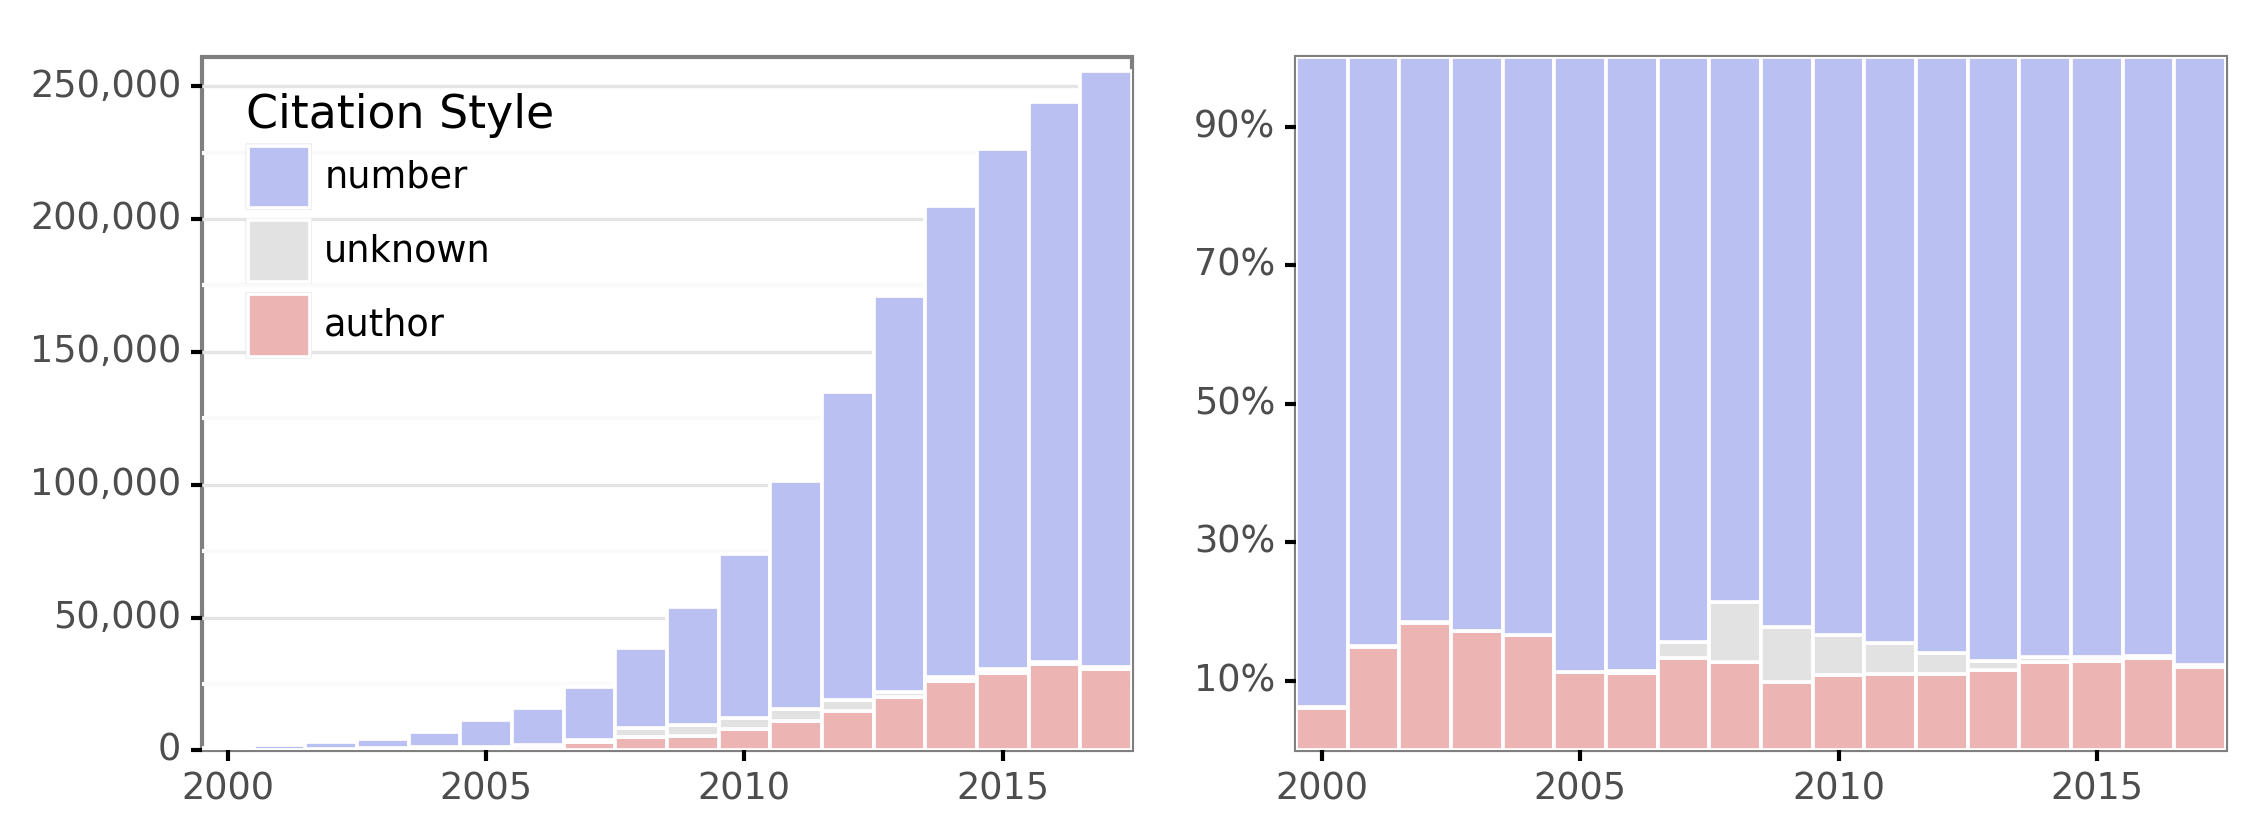 Popularity of citation styles by year